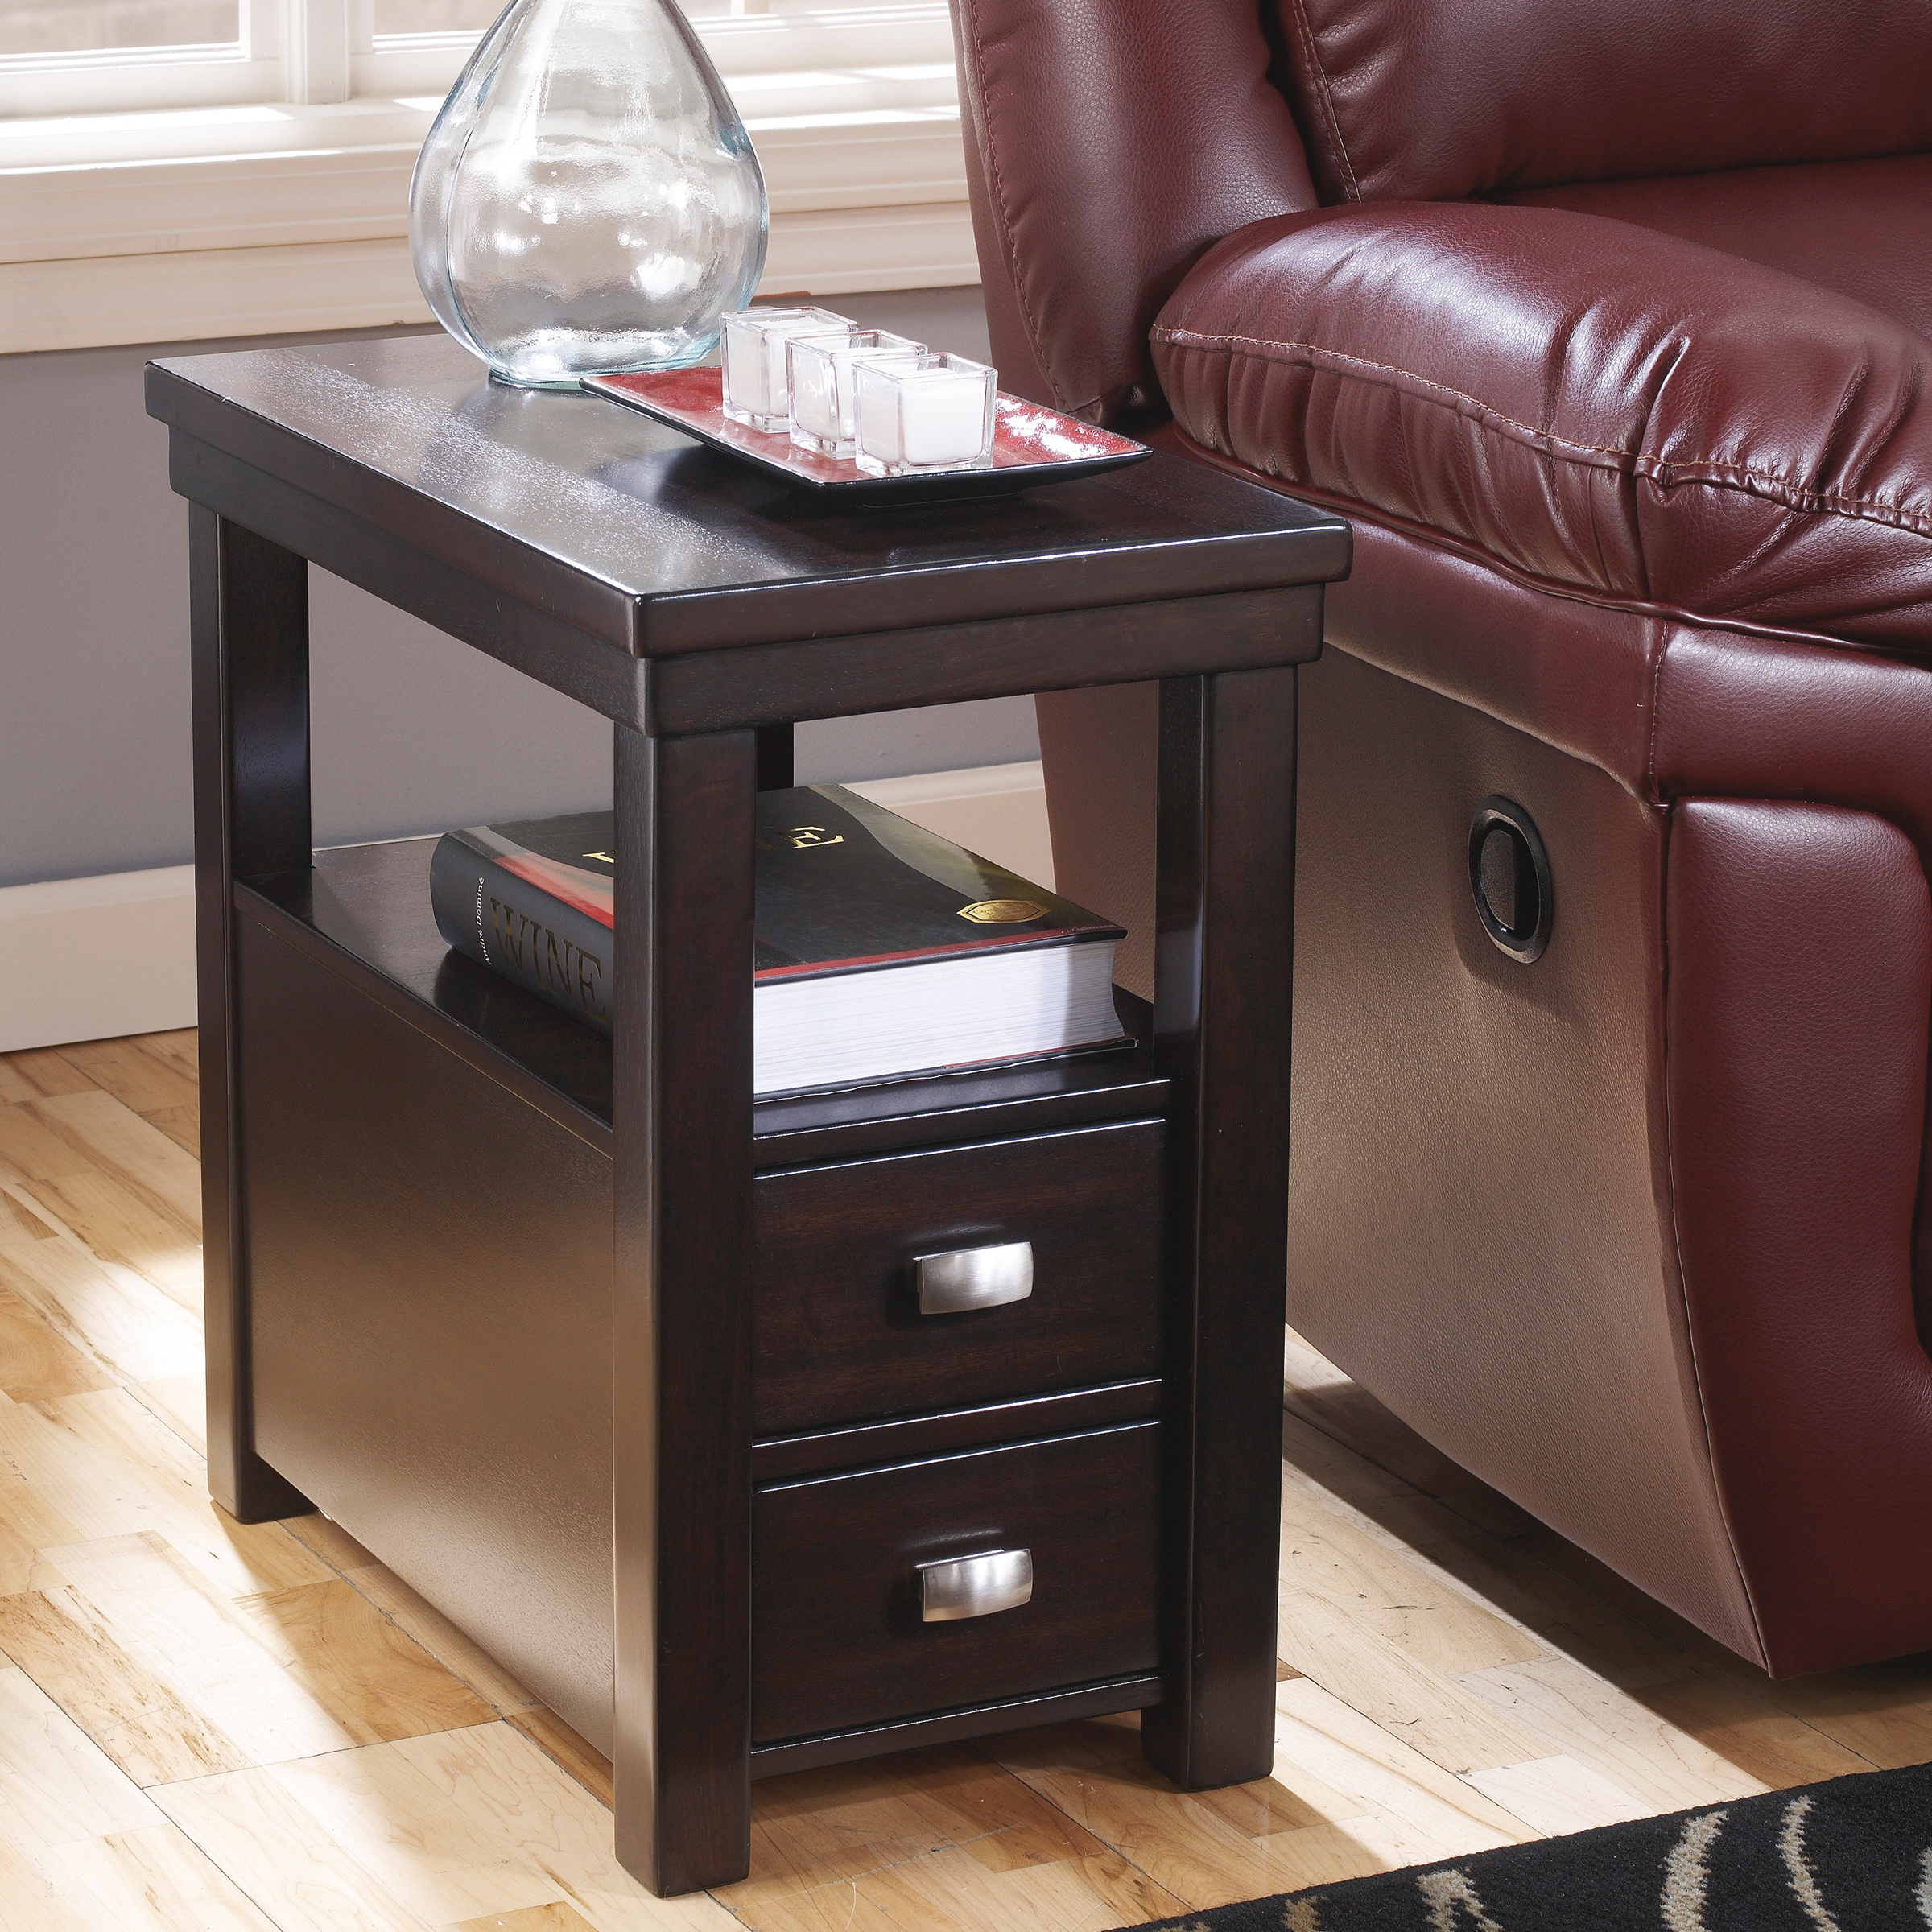 table unique small design ideas with narrow chairside end tables drawers side lamp leick furniture ashley long accent crystal desk coffee matching solid wood console slide bolt